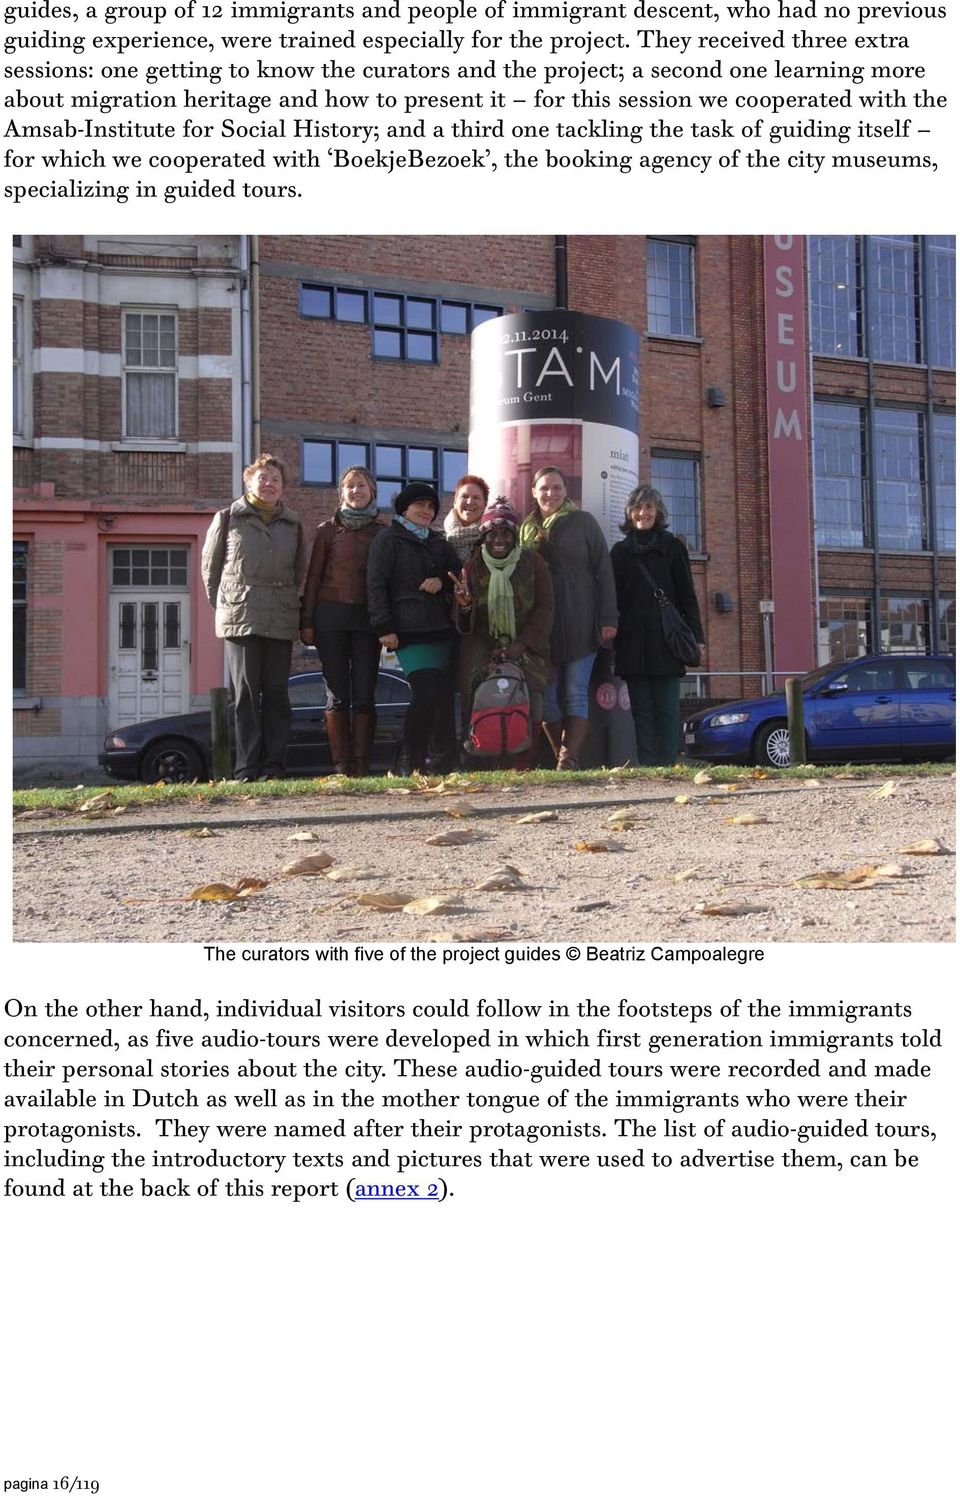 Amsab-Institute for Social History; and a third one tackling the task of guiding itself for which we cooperated with BoekjeBezoek, the booking agency of the city museums, specializing in guided tours.